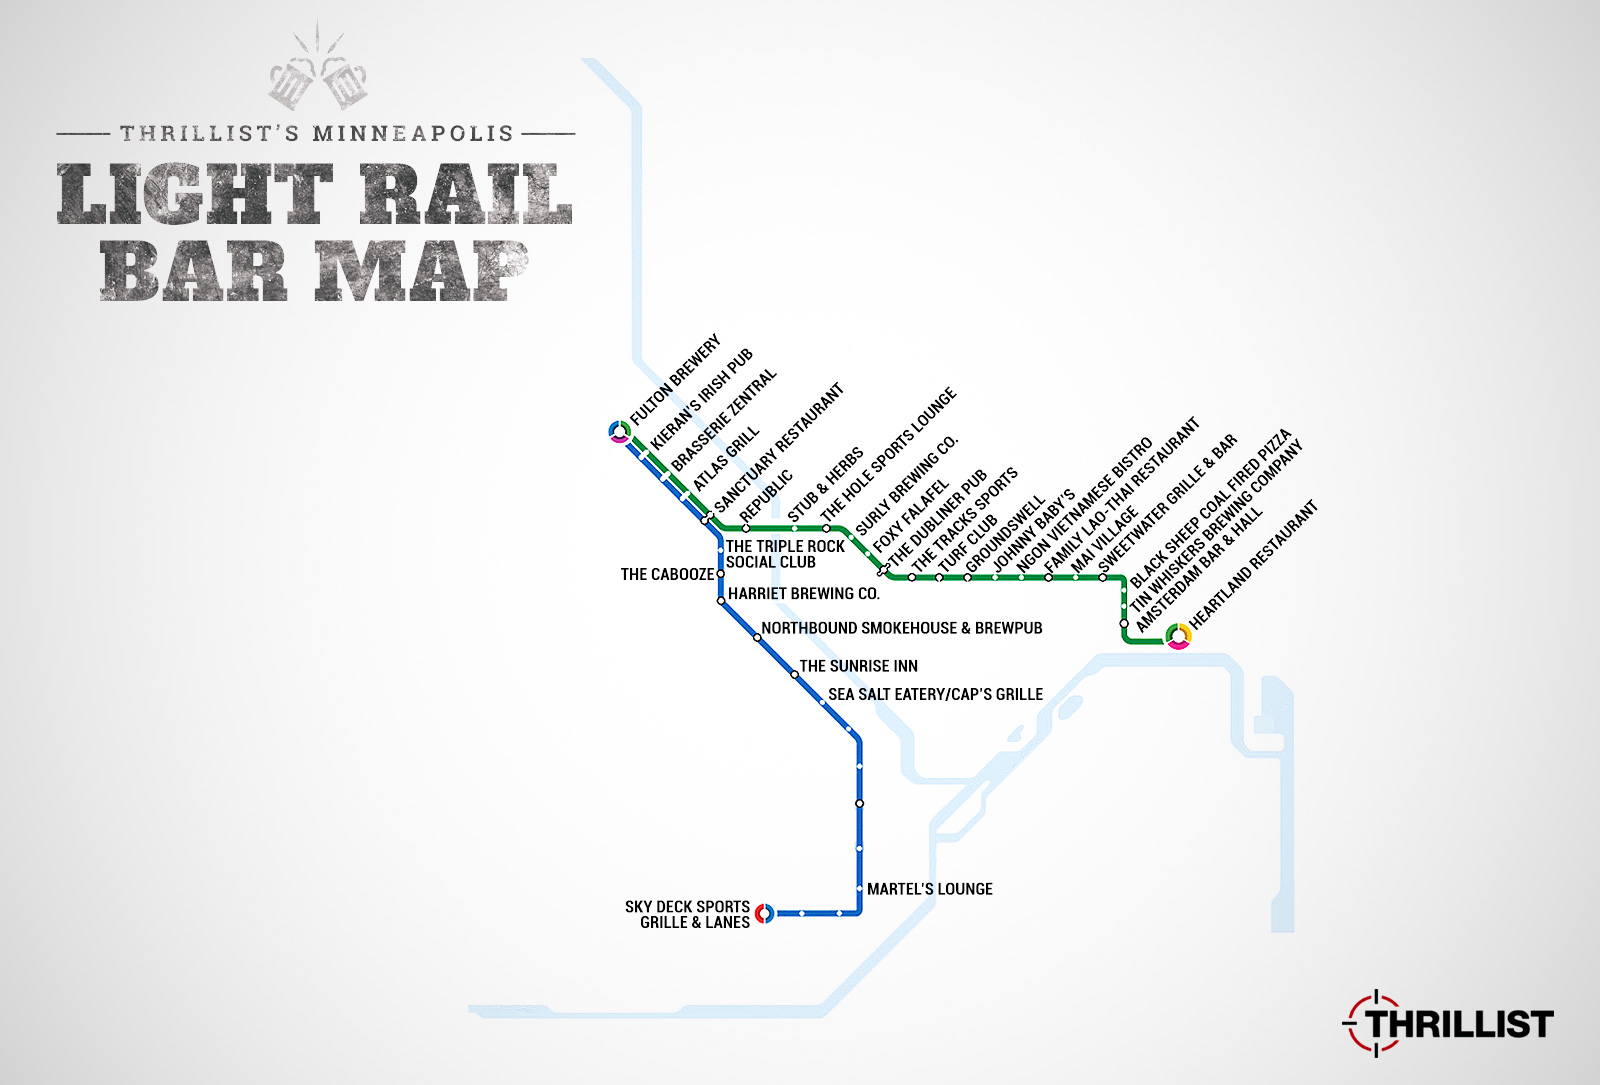 Twin Cities Light Rail Map - Map With Bars Near Every Stop - Thrillist